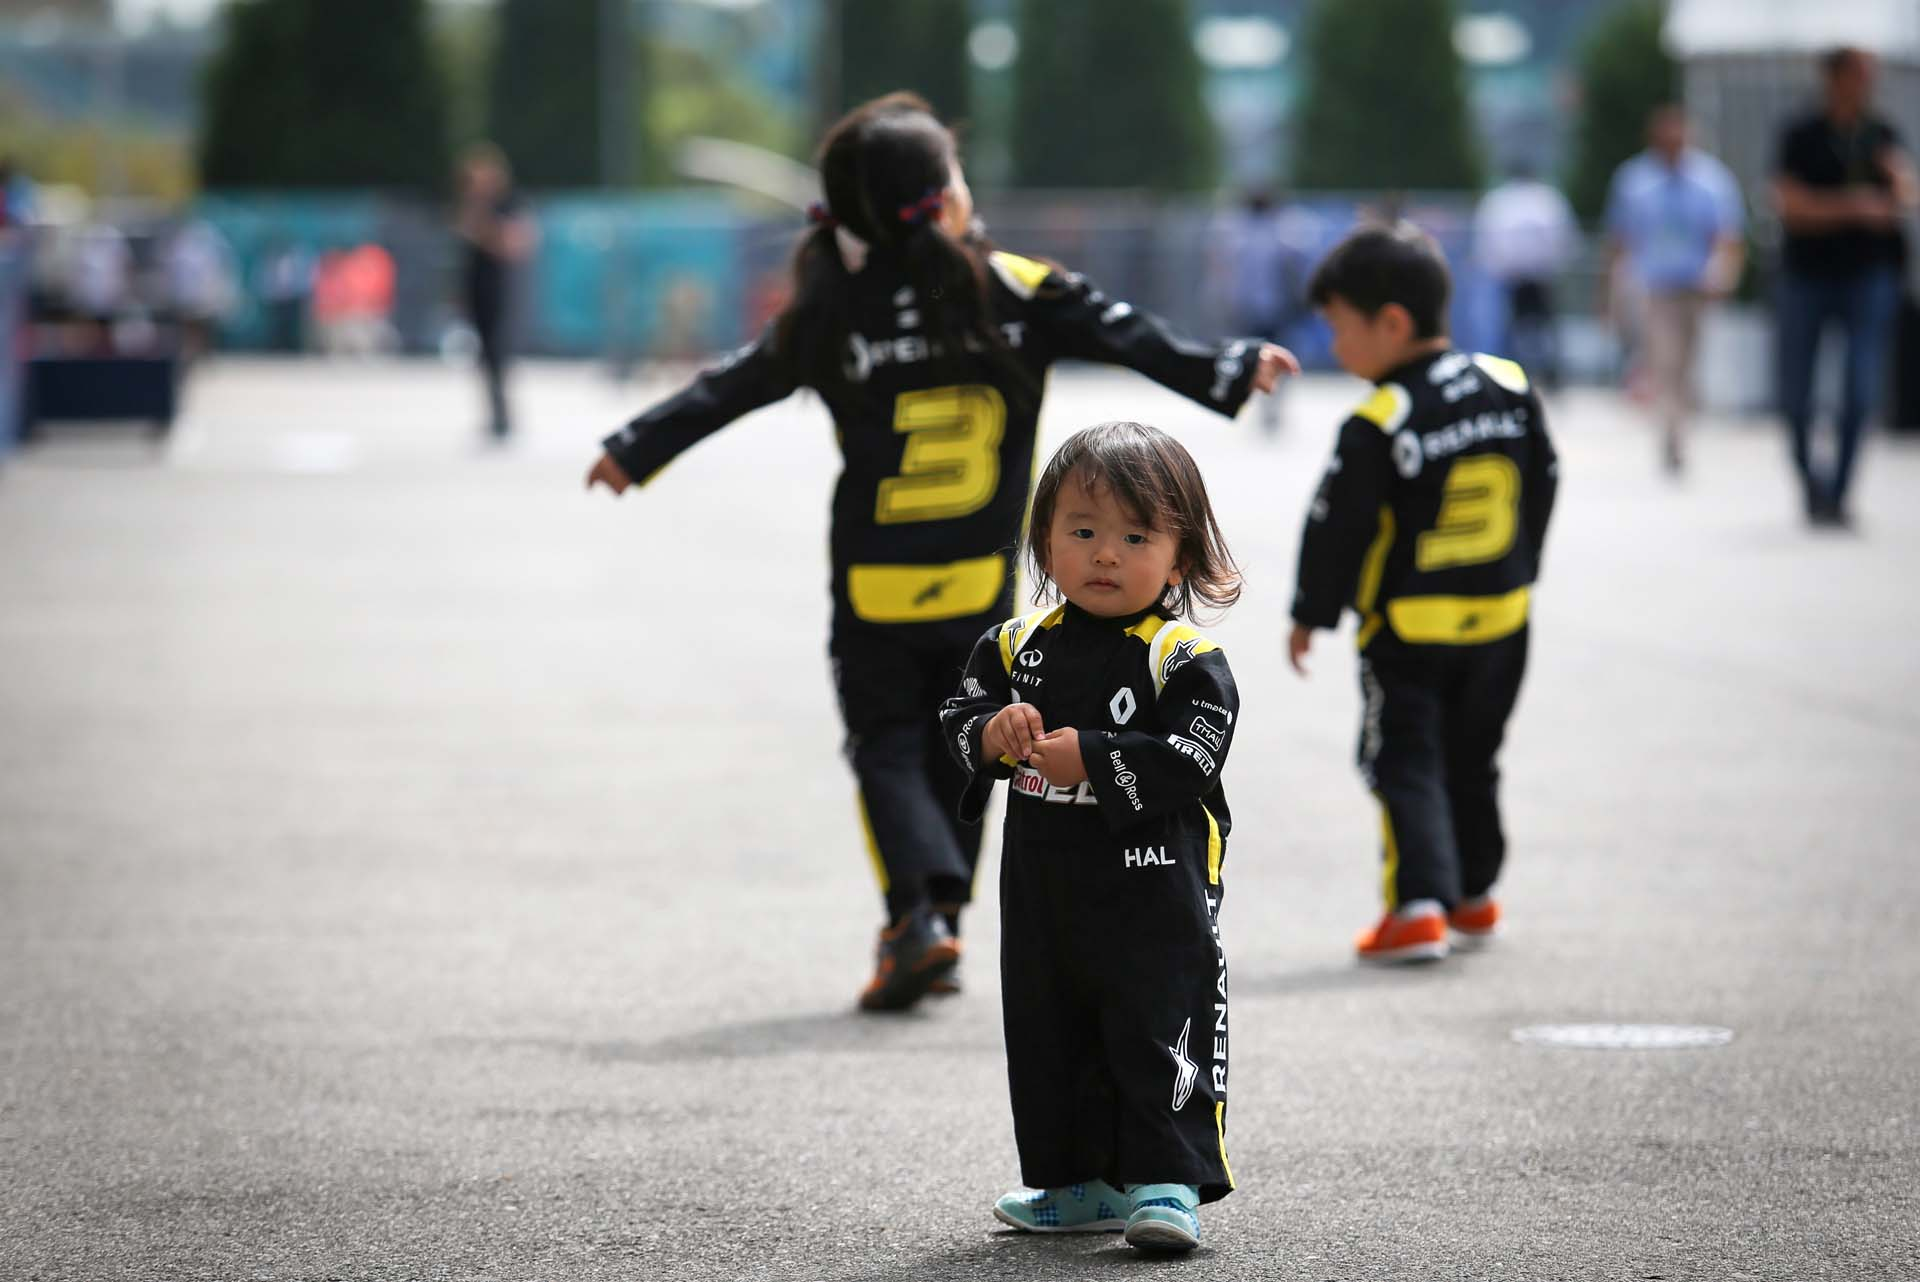 Motor Racing - Formula One World Championship - Japanese Grand Prix - Preparation Day - Suzuka, Japan